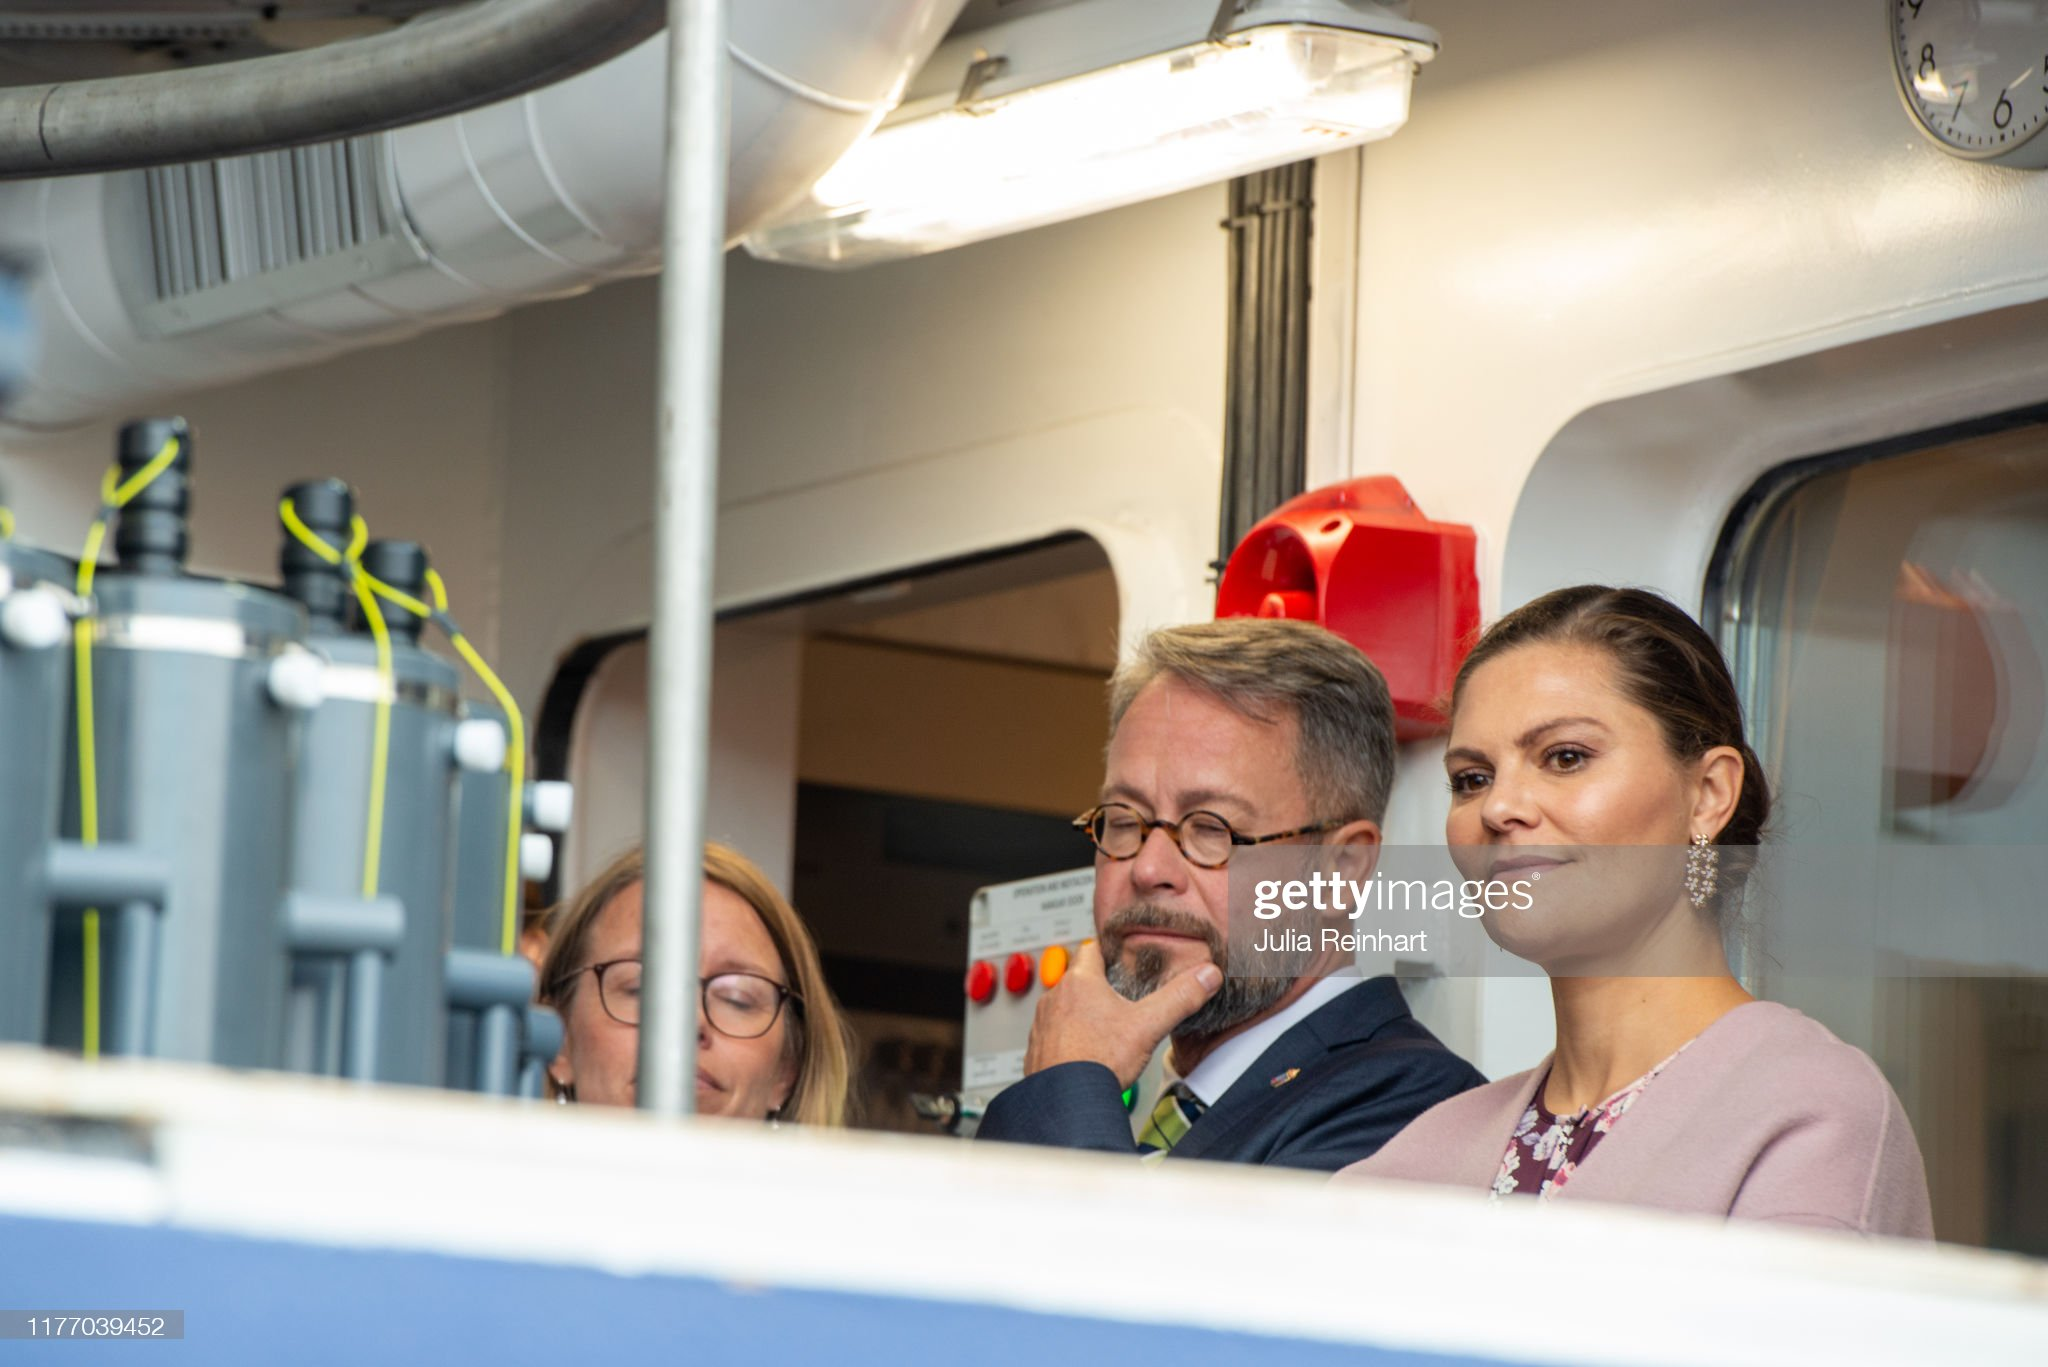 crown-princess-victoria-inspects-the-sea-fish-laboratorys-new-ship-picture-id1177039452